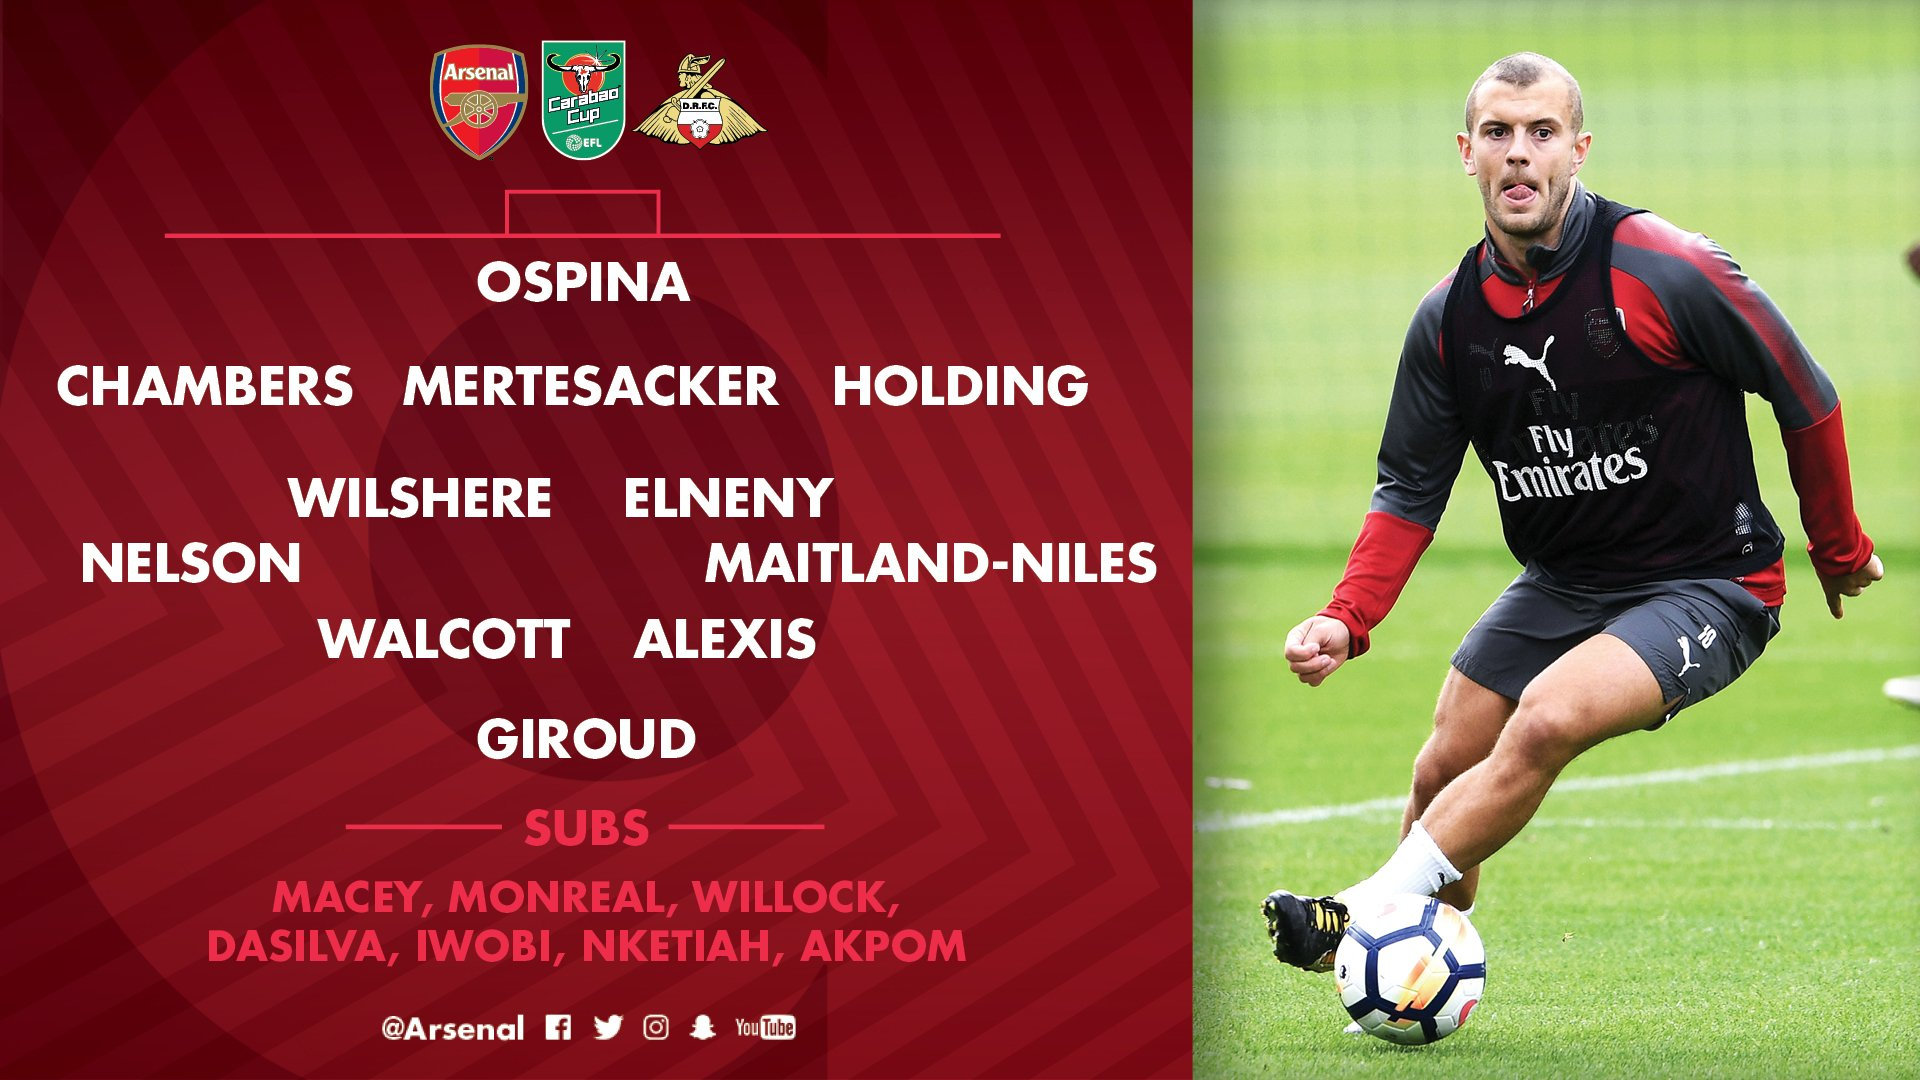 �� Here's how we line up tonight - what do you make of our starting XI?  #AFCvDRFC https://t.co/hsr9iHI7Is